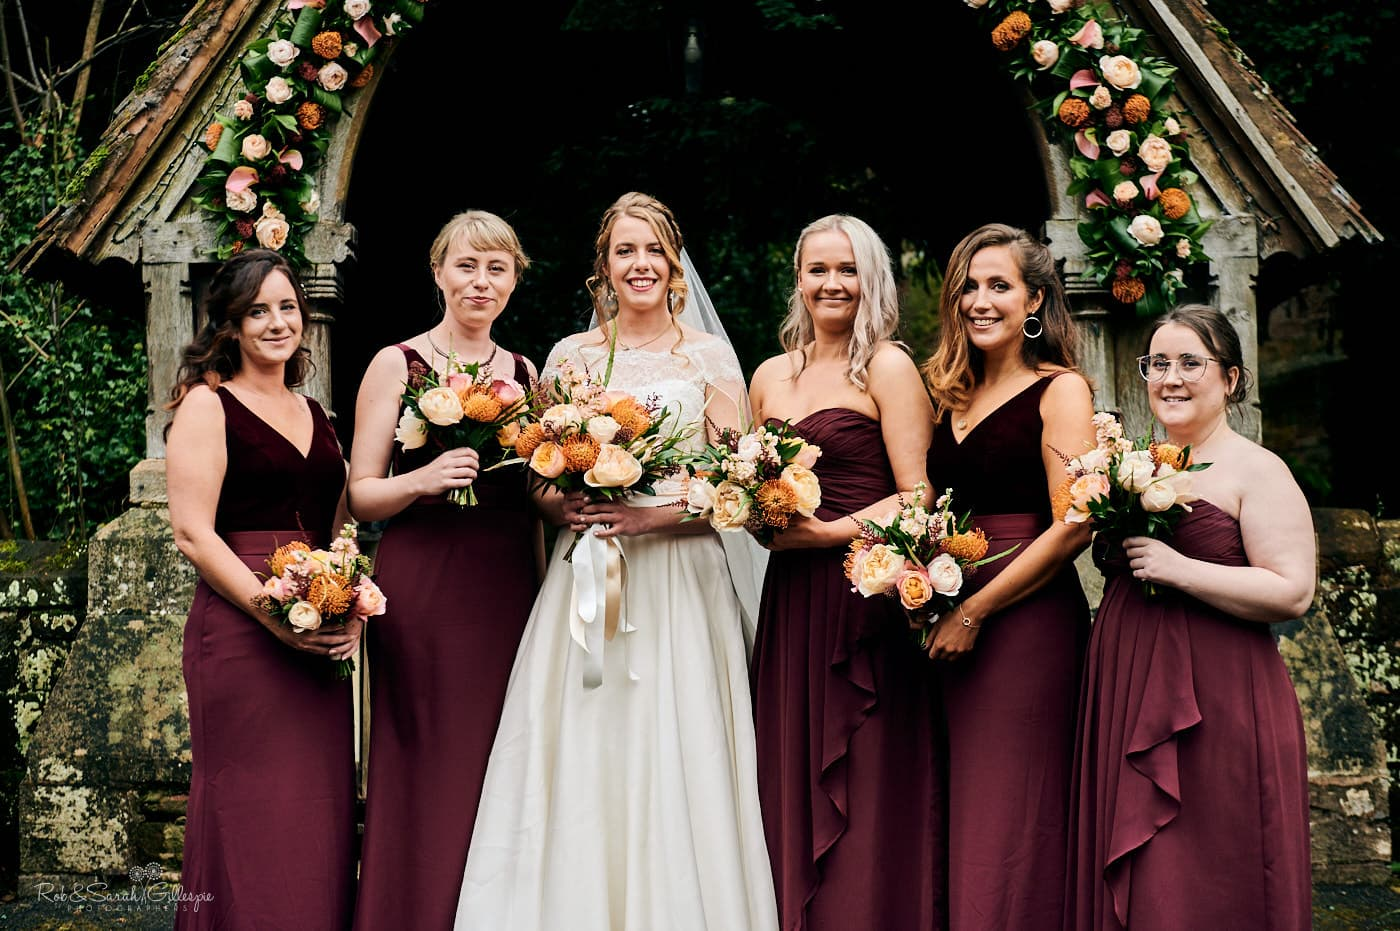 Group photo of bride and bridesmaids in front of lychgate at St Peter's church Pedmore